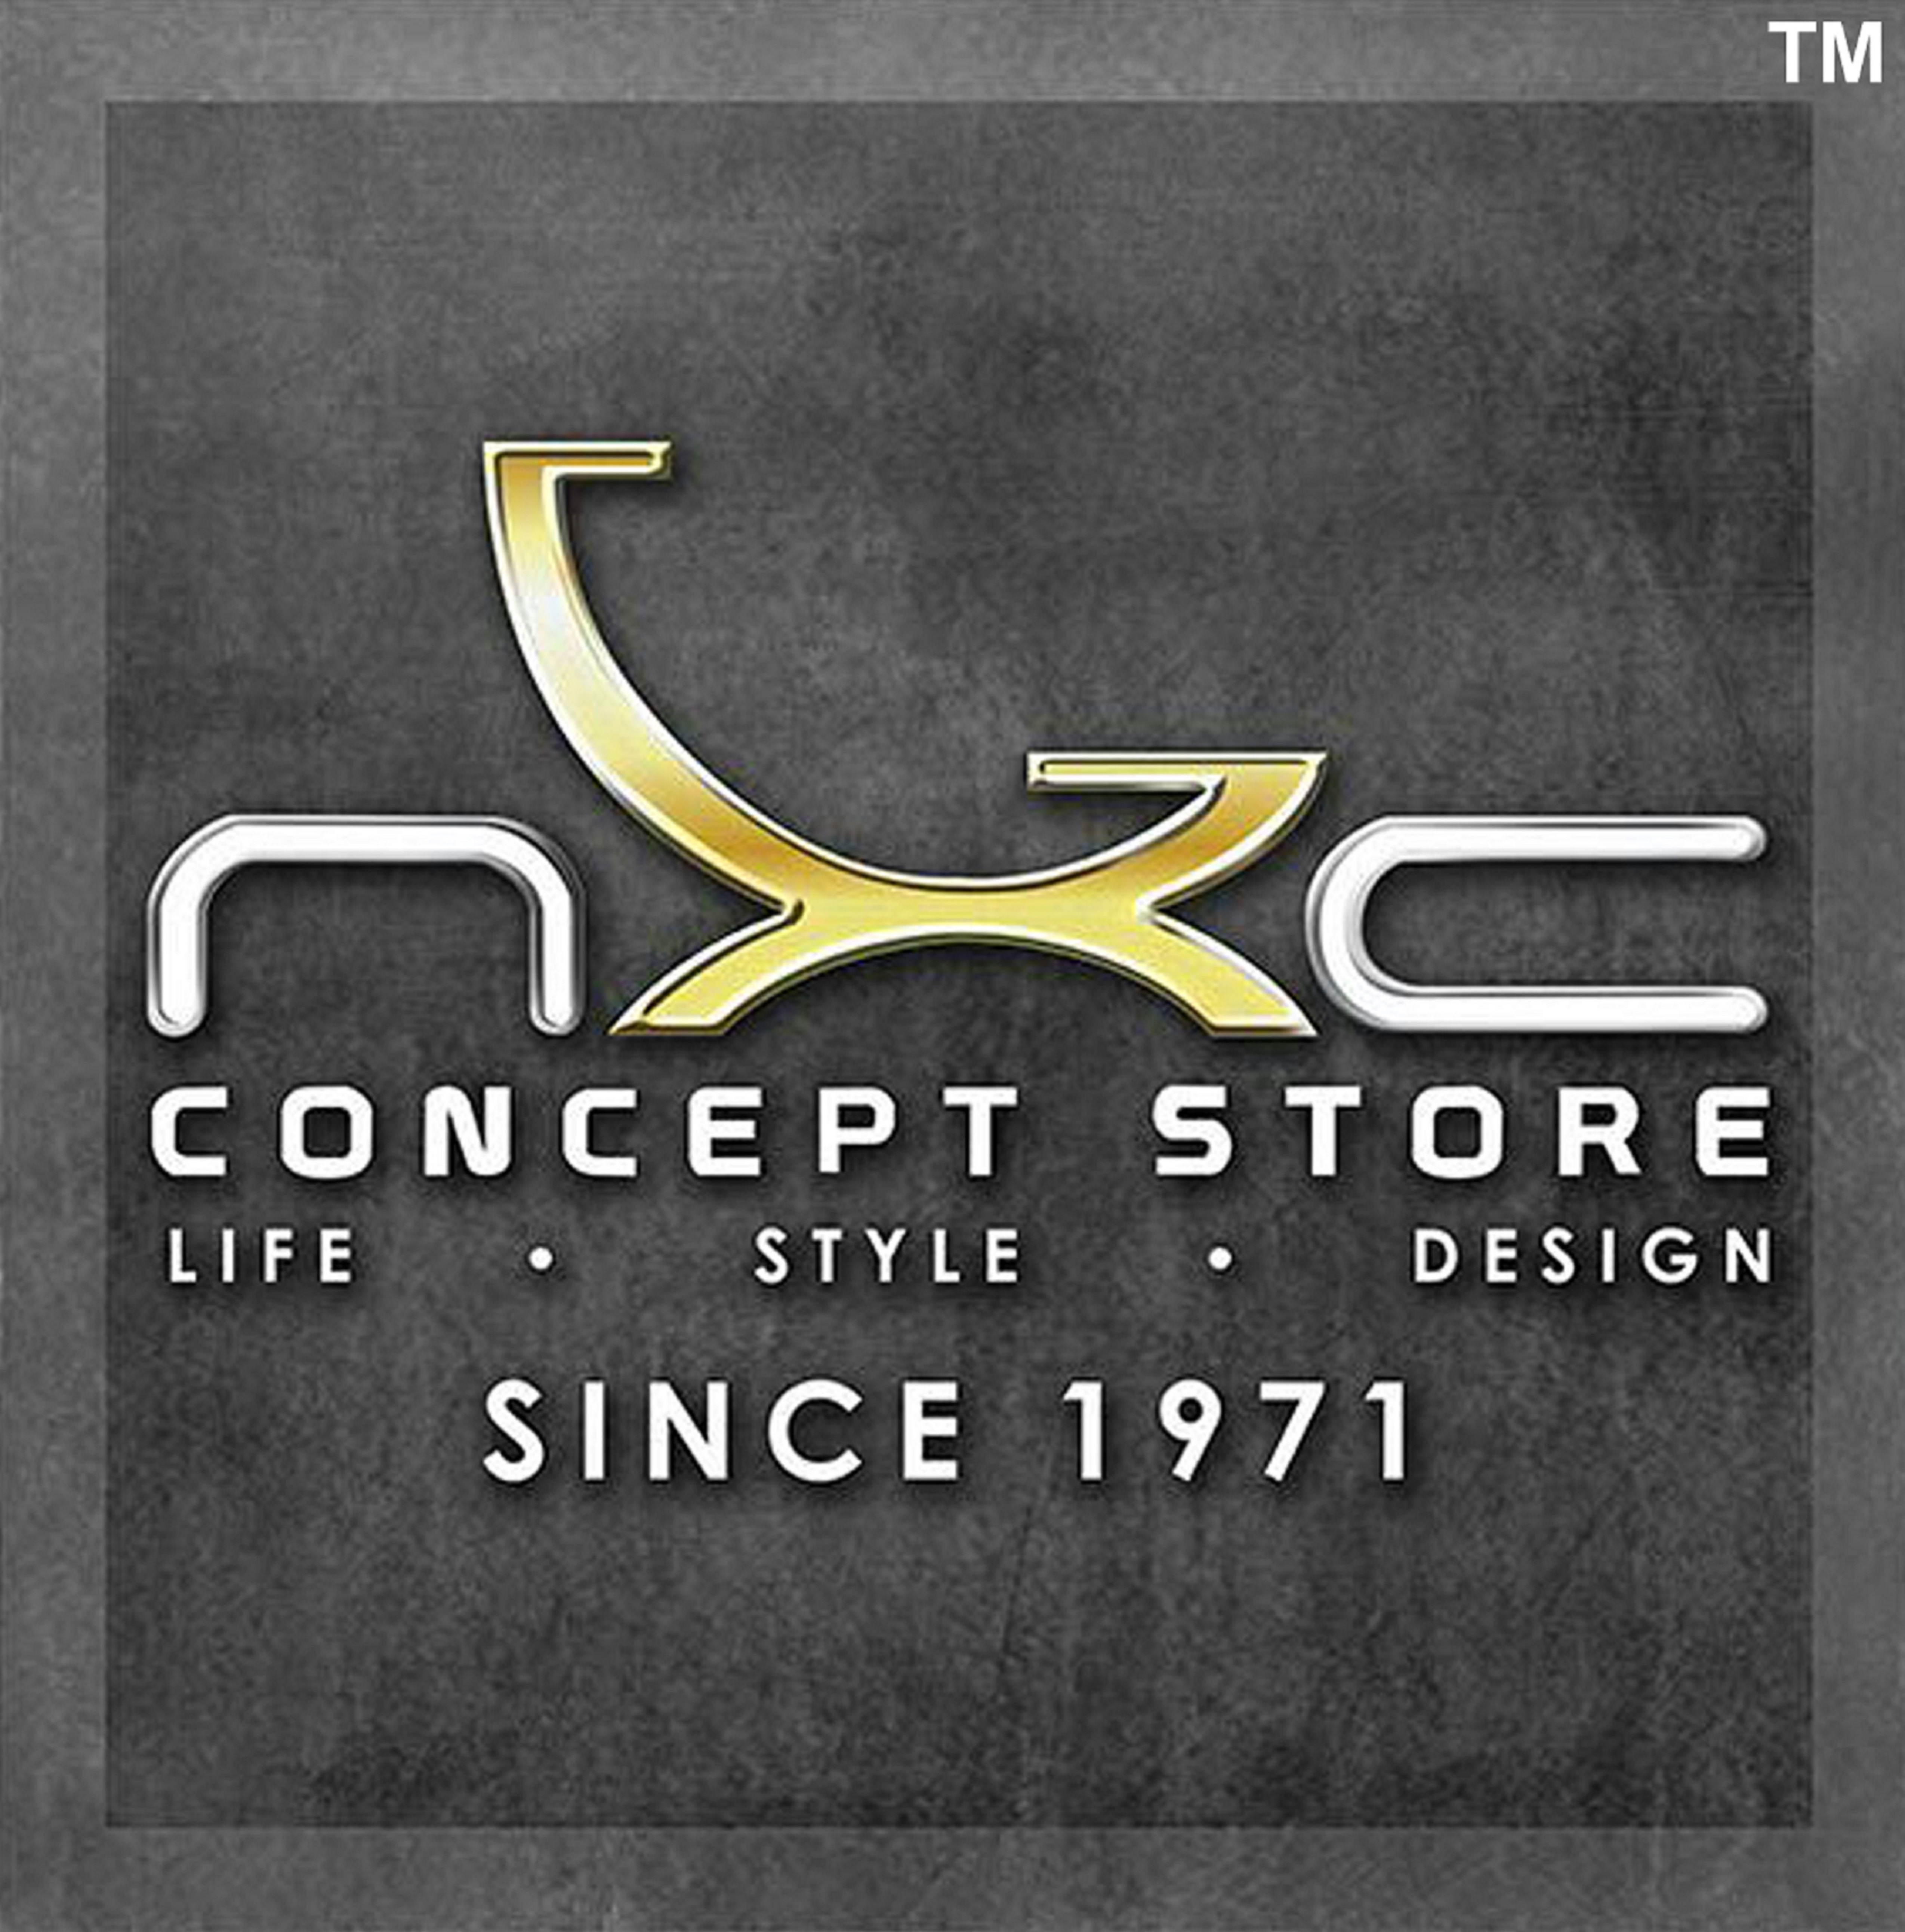 NGC Concept Store